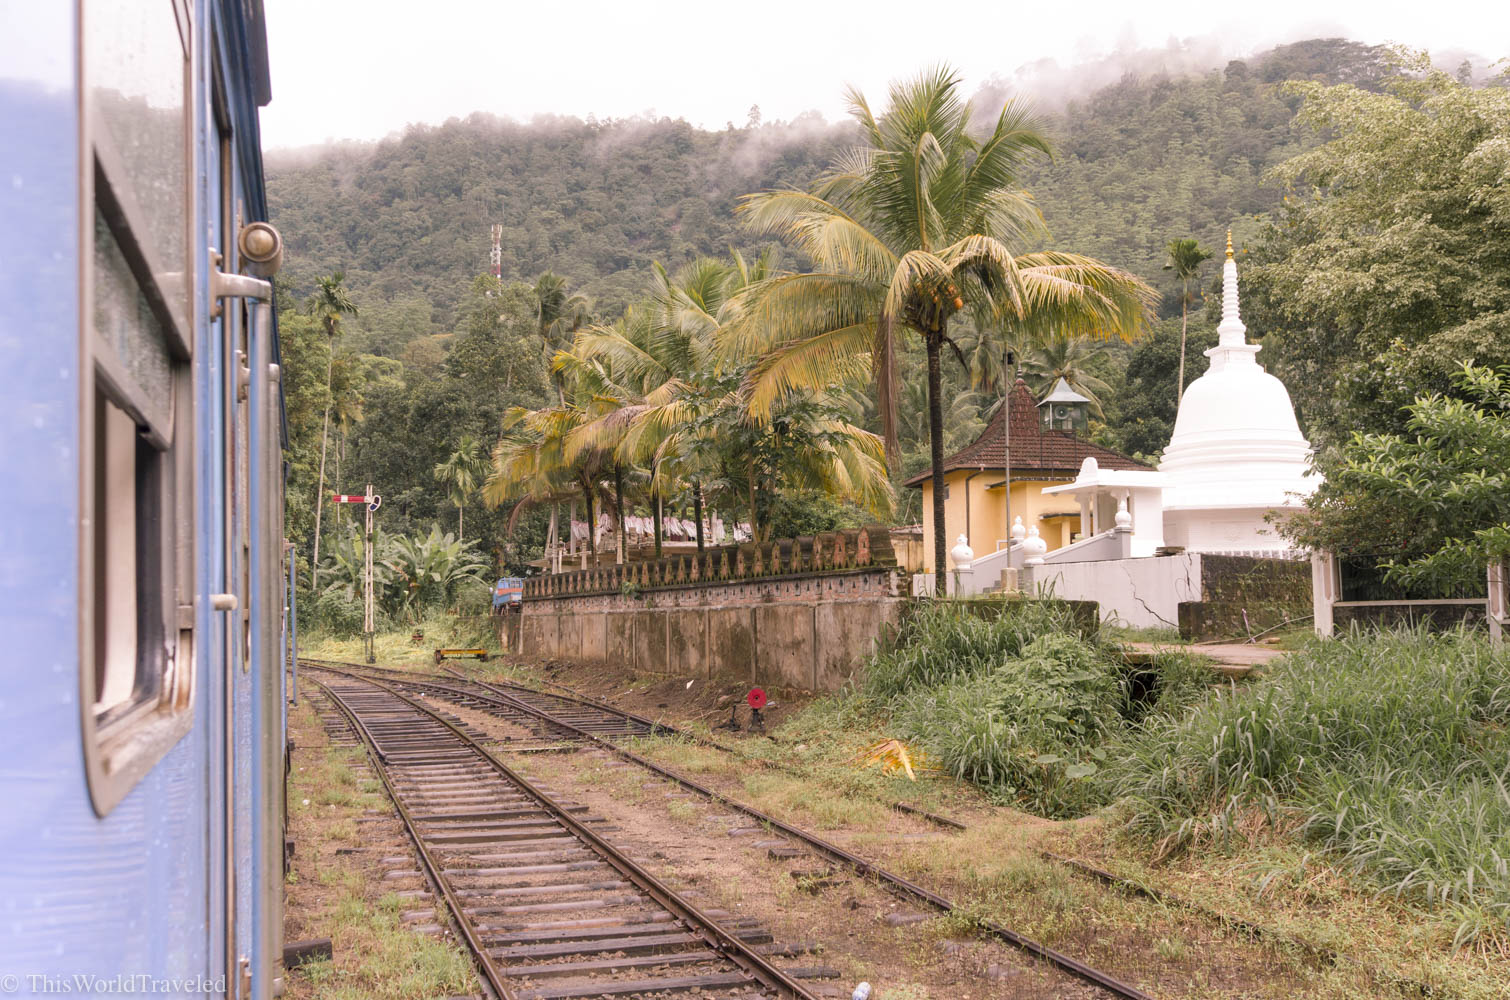 Sri Lanka's Most Beautiful Train Journey: Kandy to Nuwara Eliya to Ella